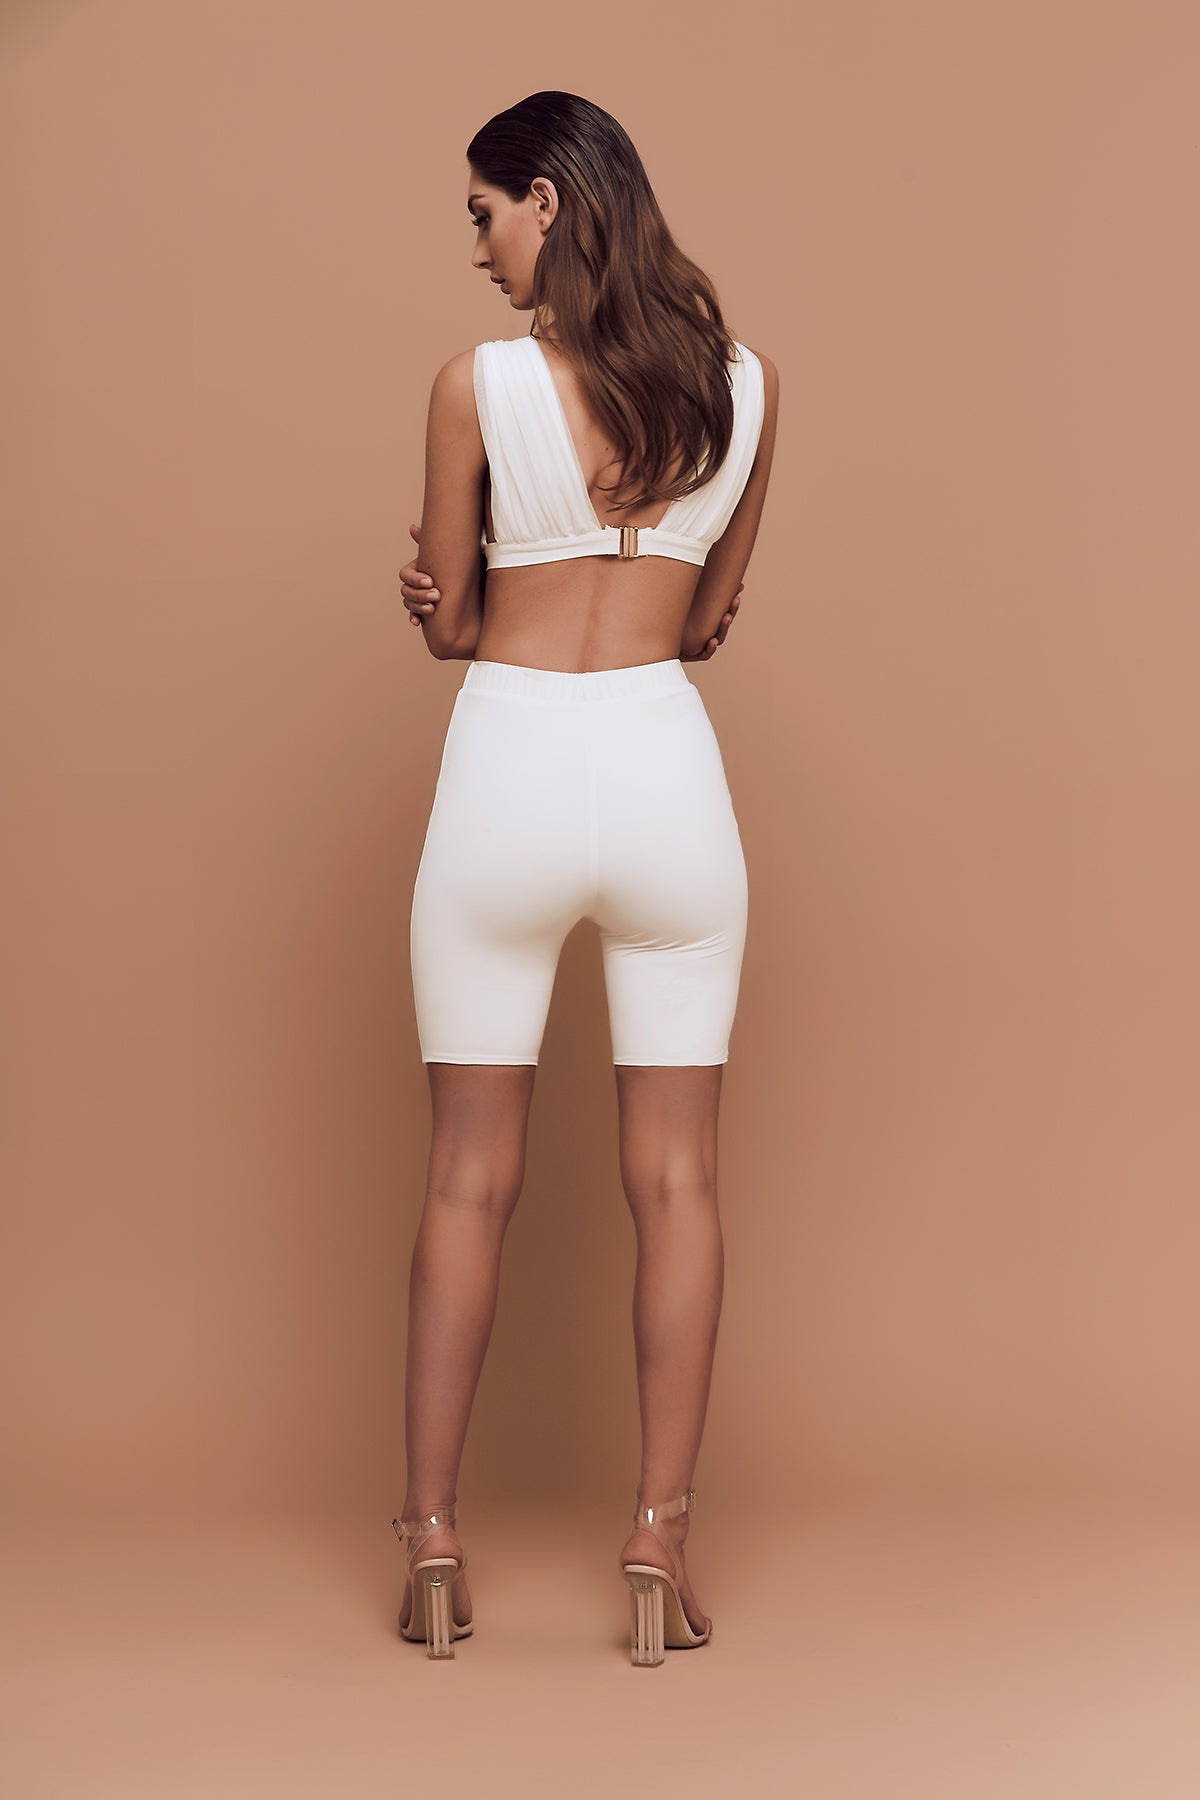 Cali Bike Shorts (white) zoomed